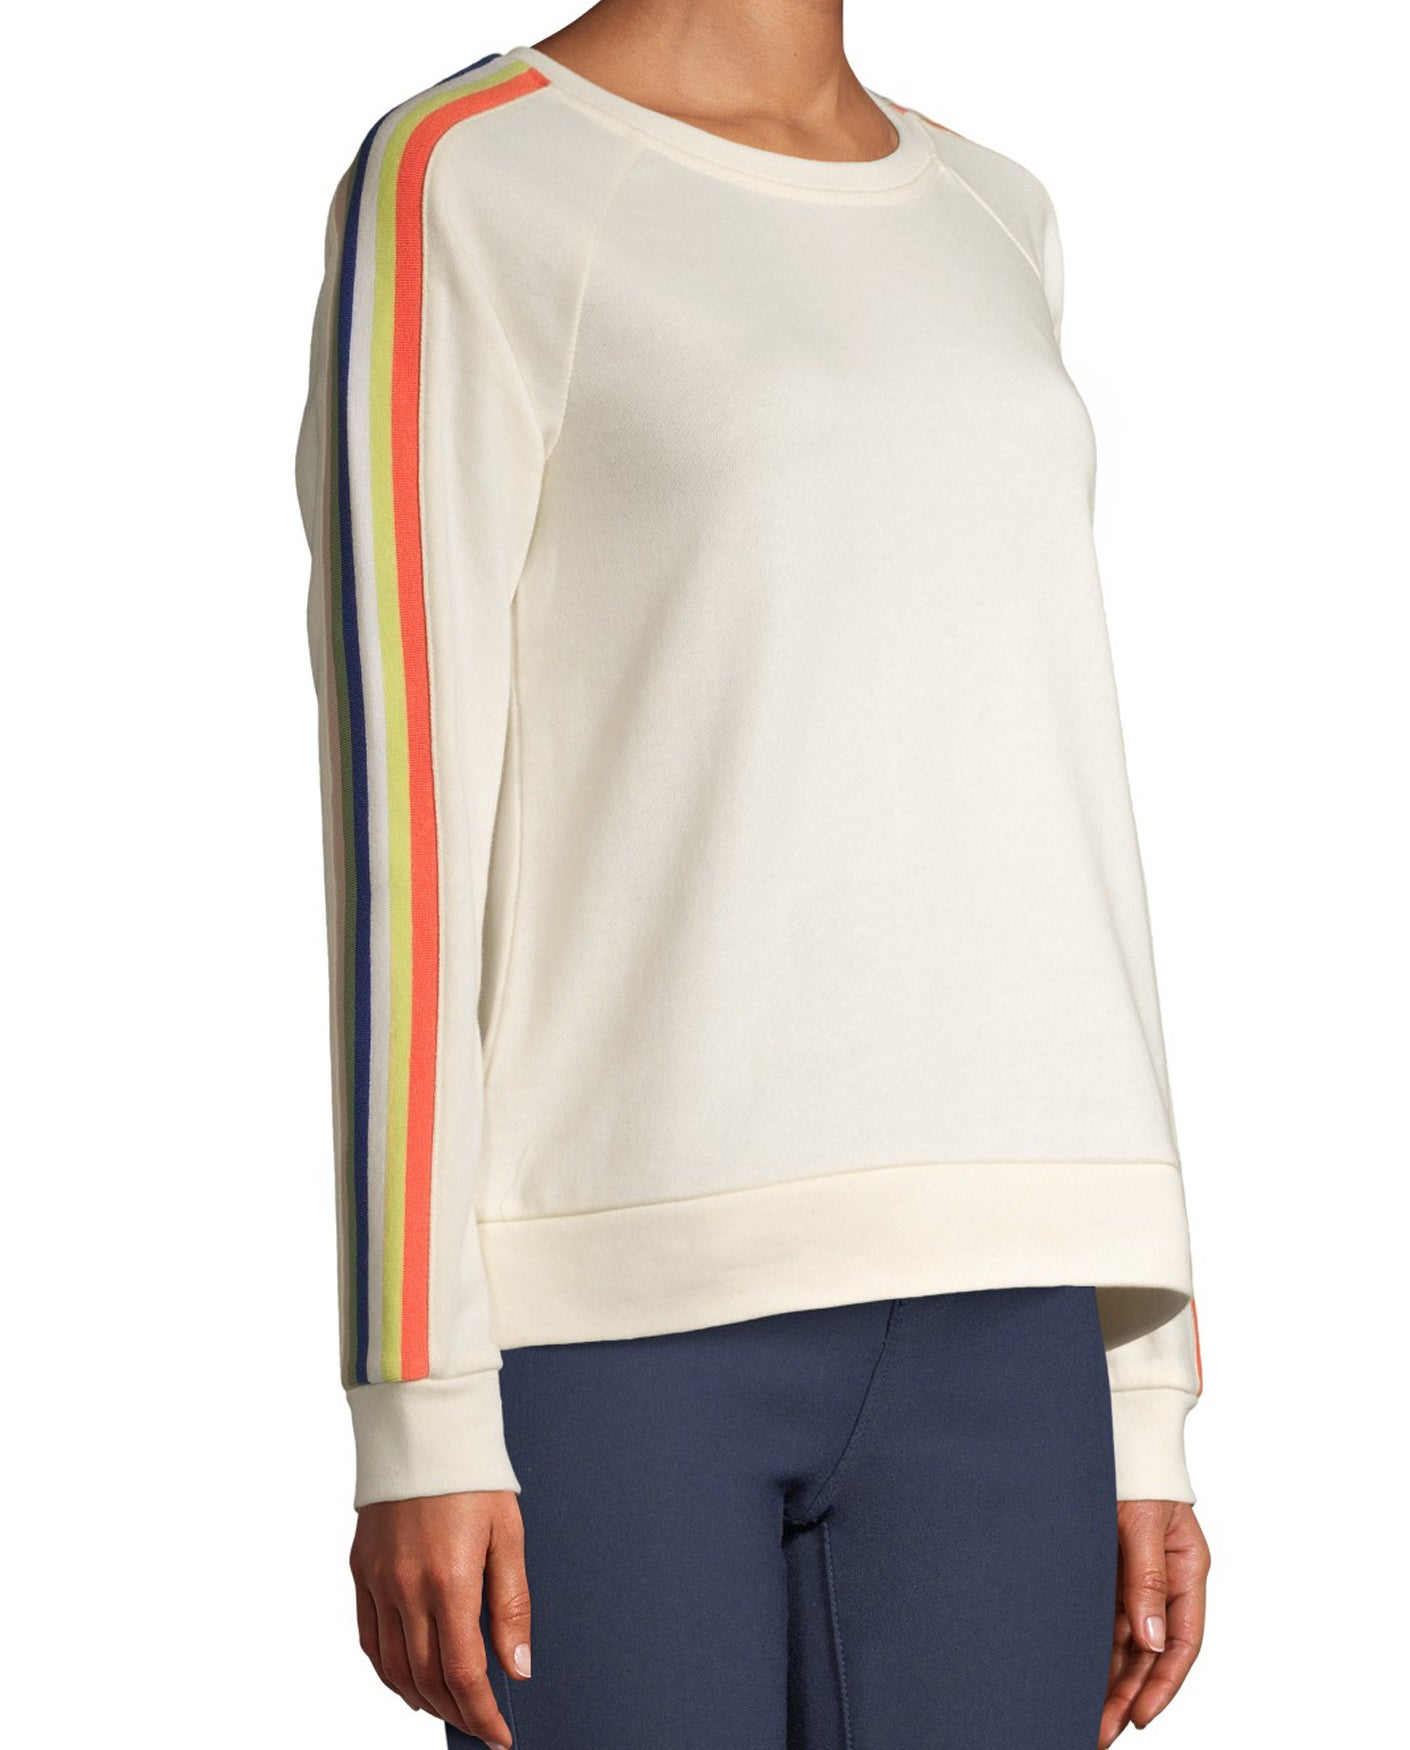 The cream sweatshirt with colorful stripes down the arm